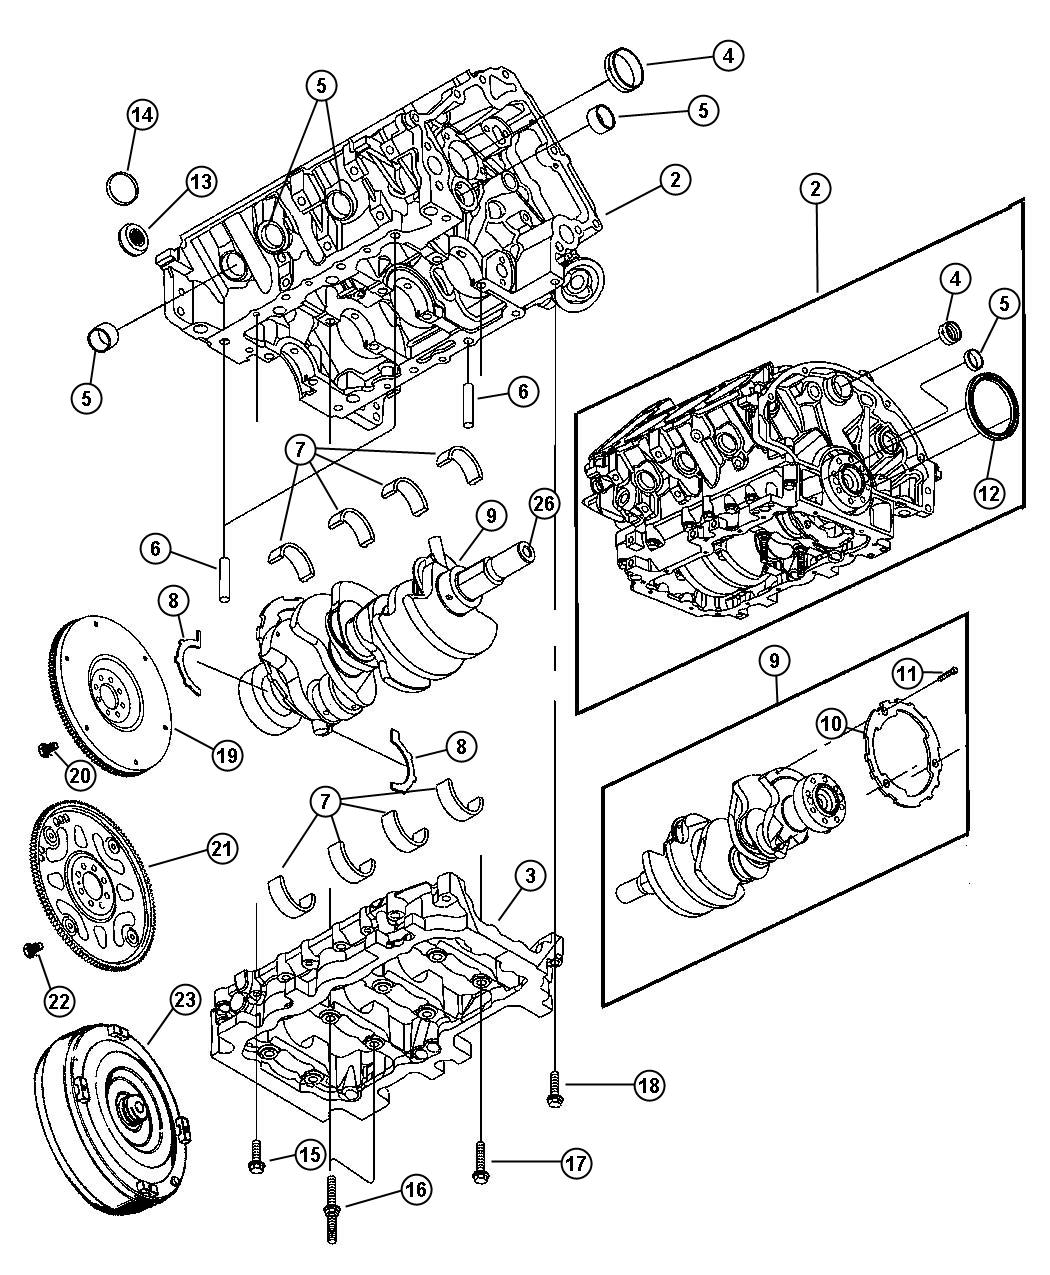 Jeep Liberty Engine Layout, Jeep, Free Engine Image For